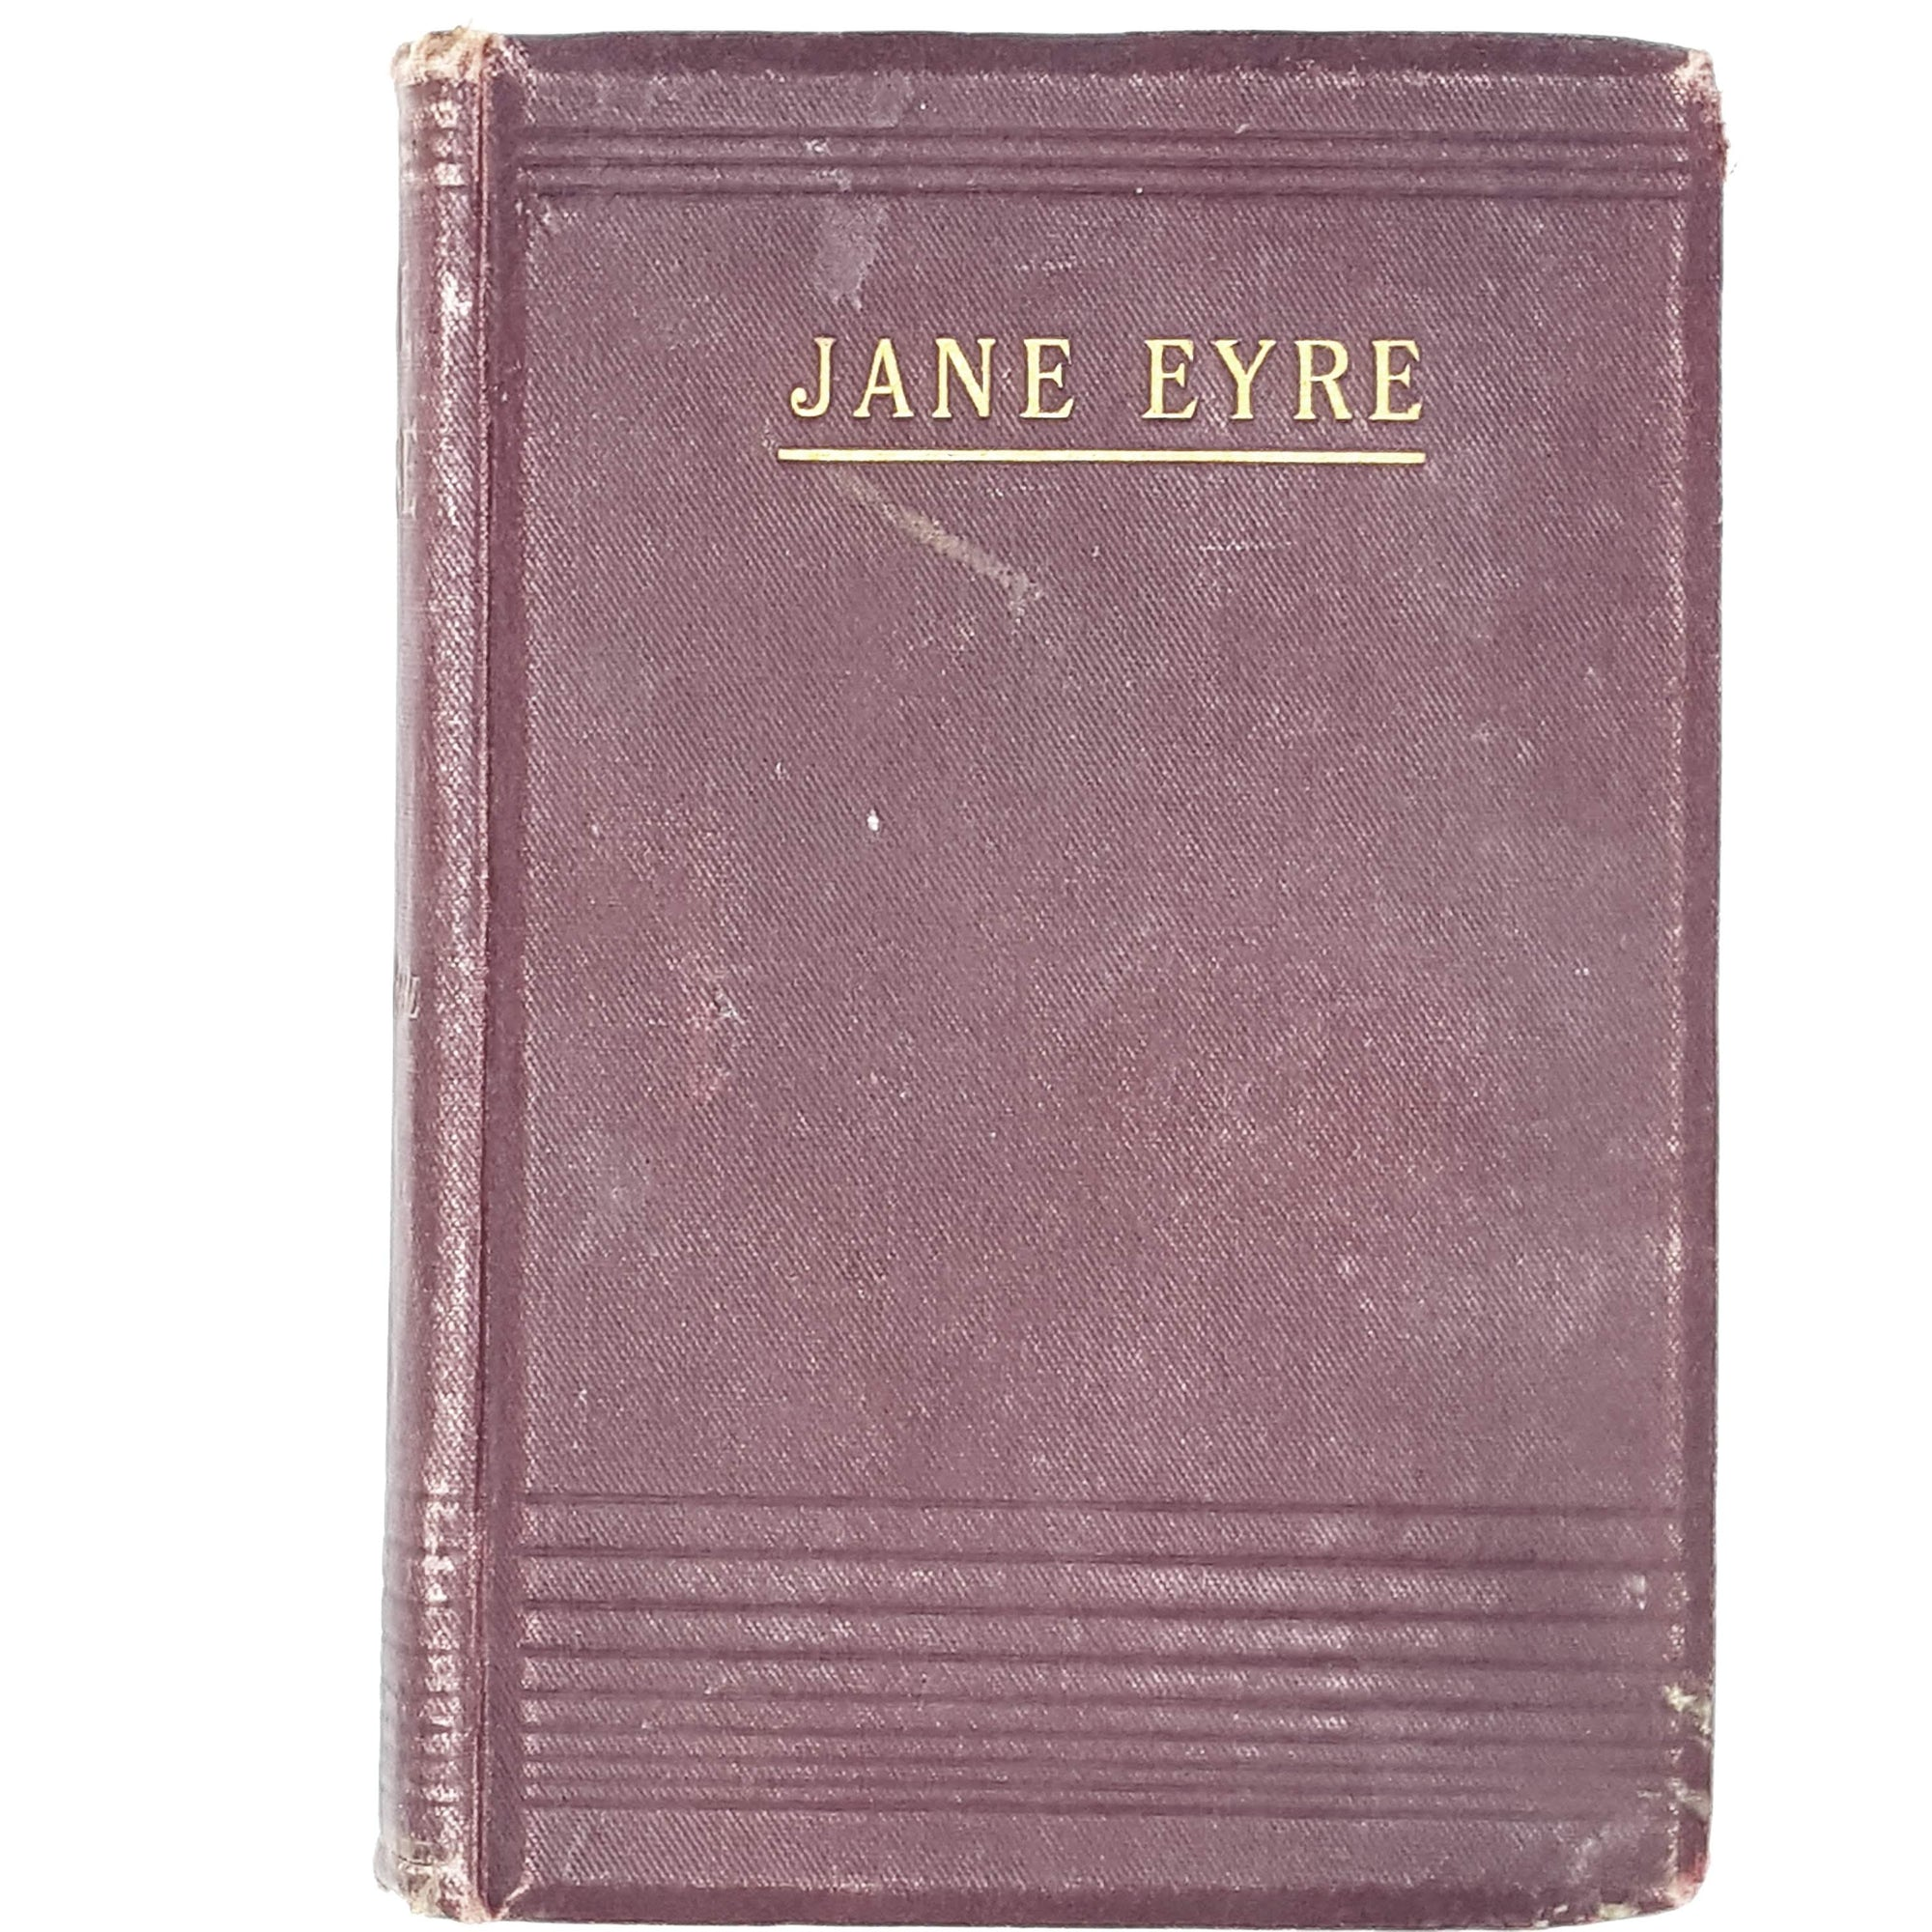 Charlotte Brontë's Jane Eyre Richard Edward King